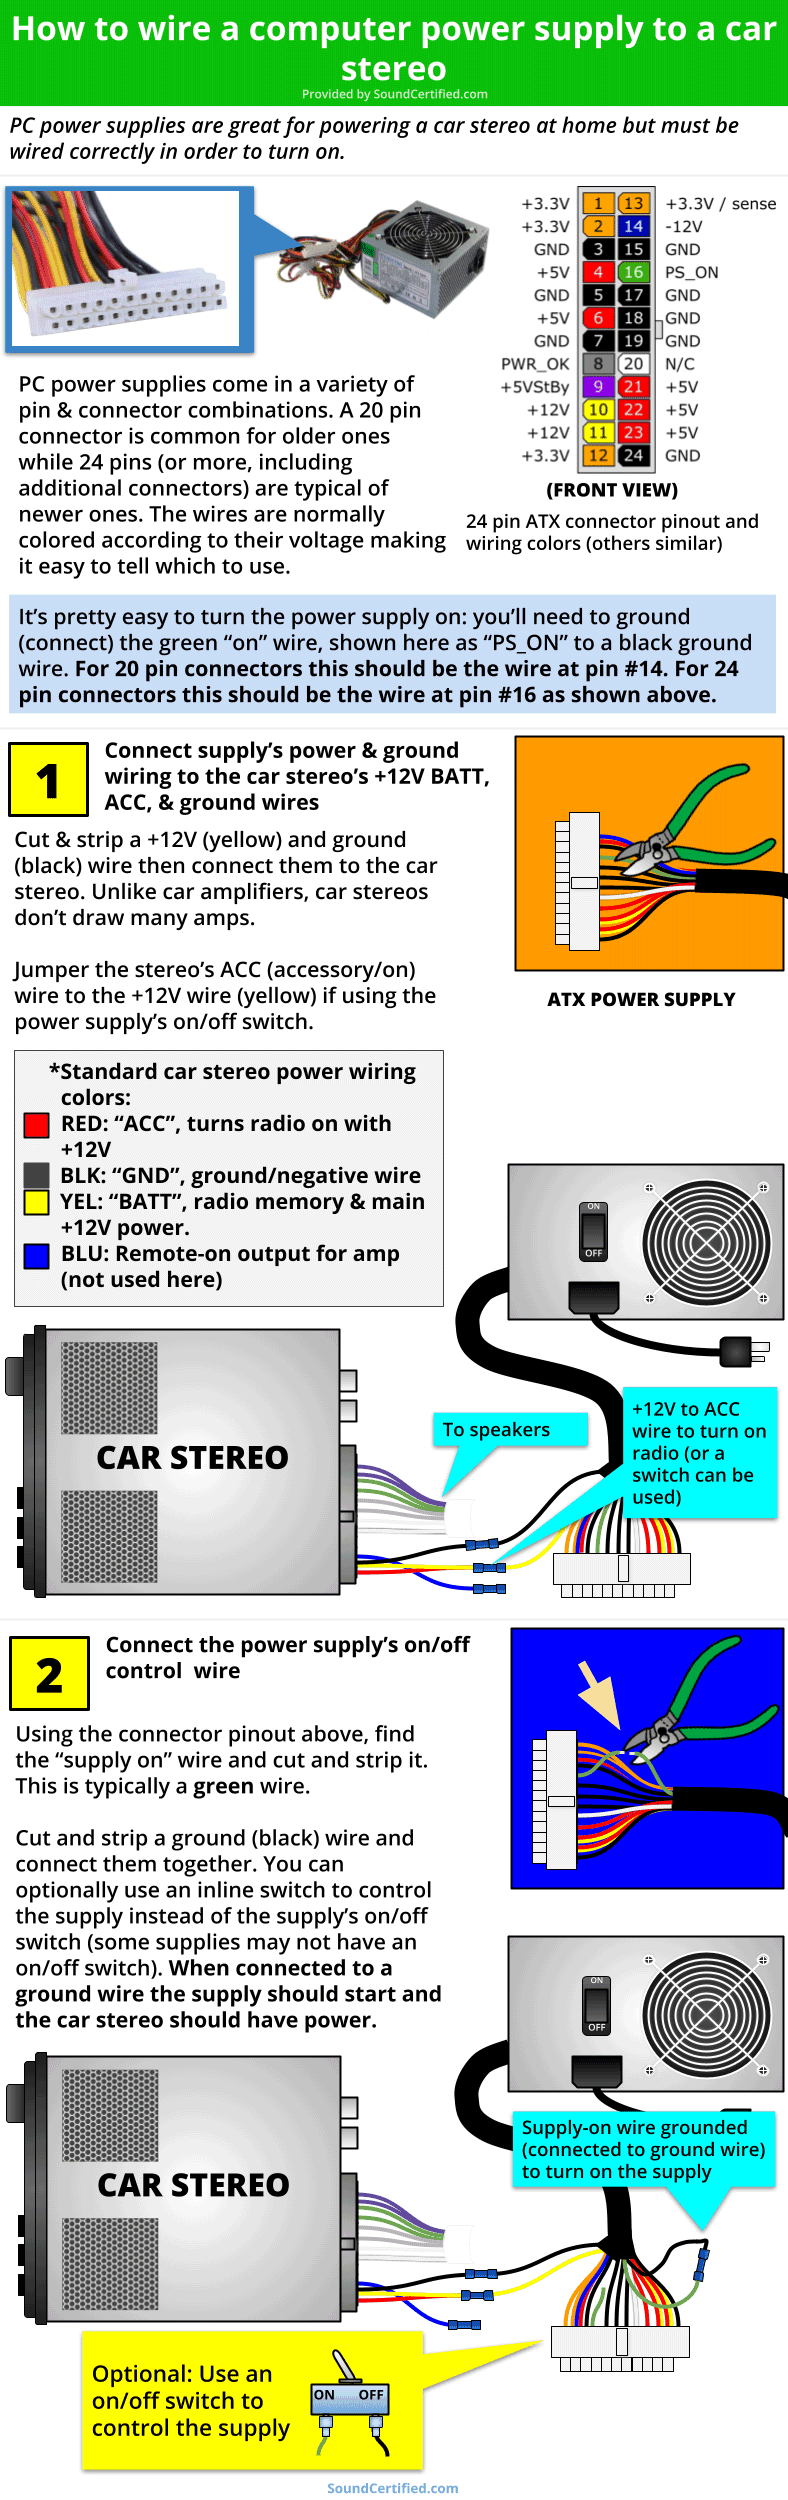 How to wire a computer power supply to a car stereo diagram